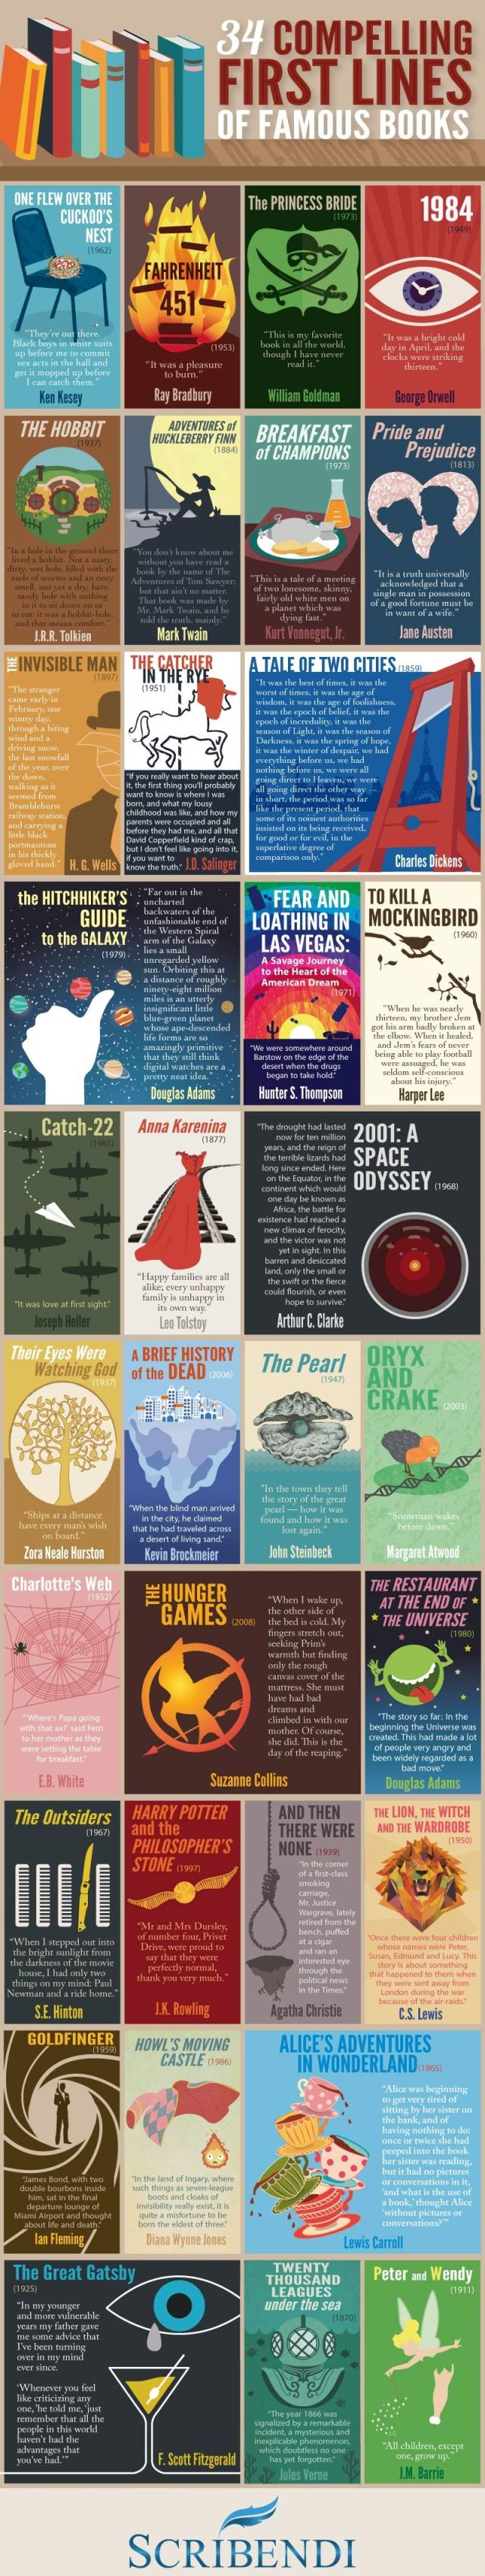 34 Compelling First Lines of Famous Books #infographic